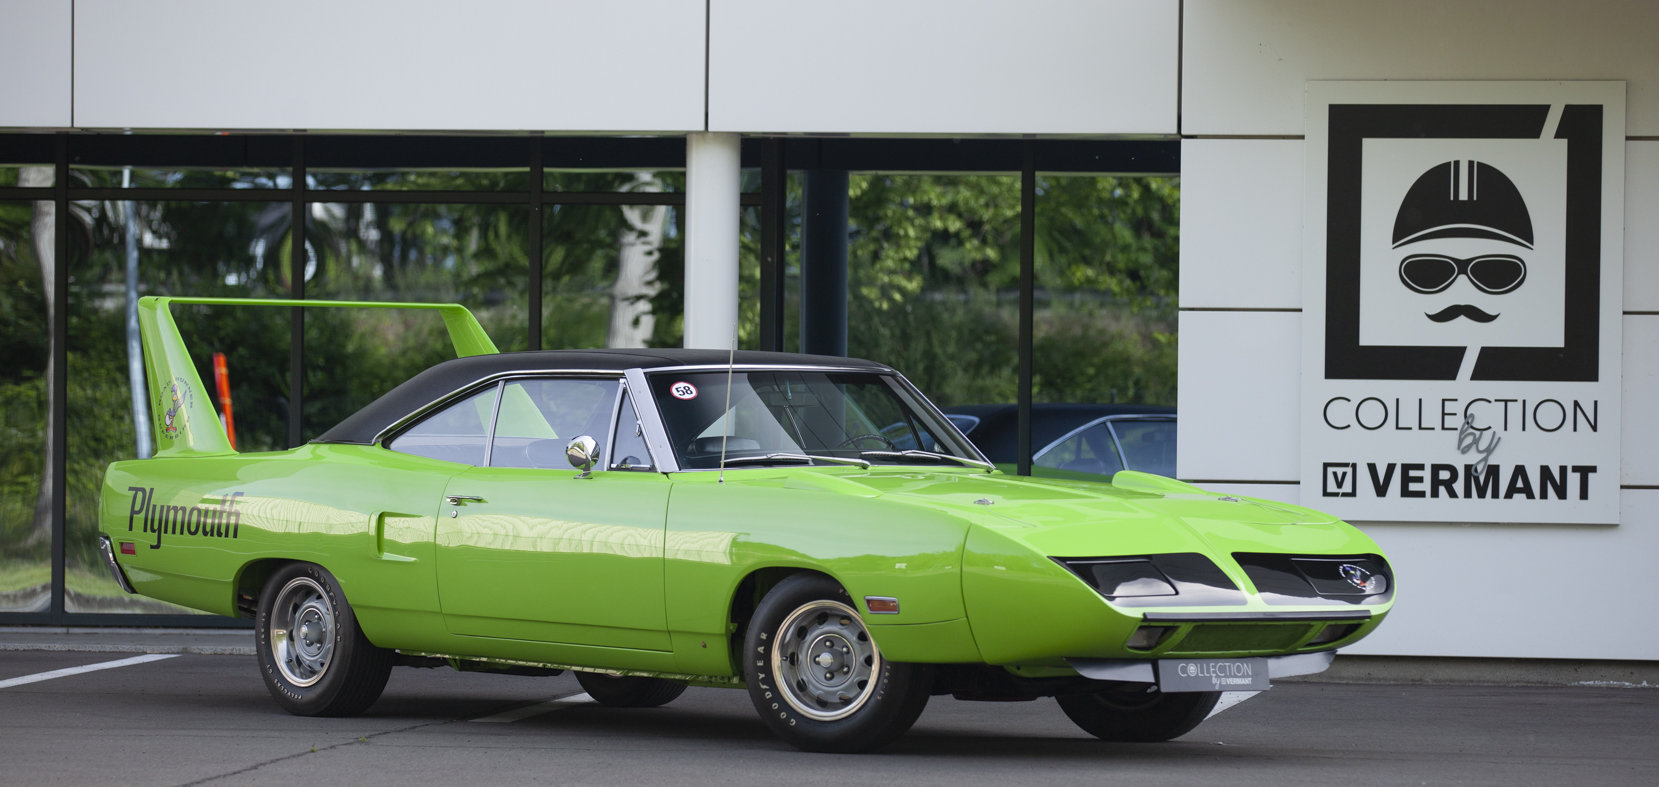 1970 Plymouth Road Runner Superbird - Concours winner!! For Sale (picture 1 of 6)